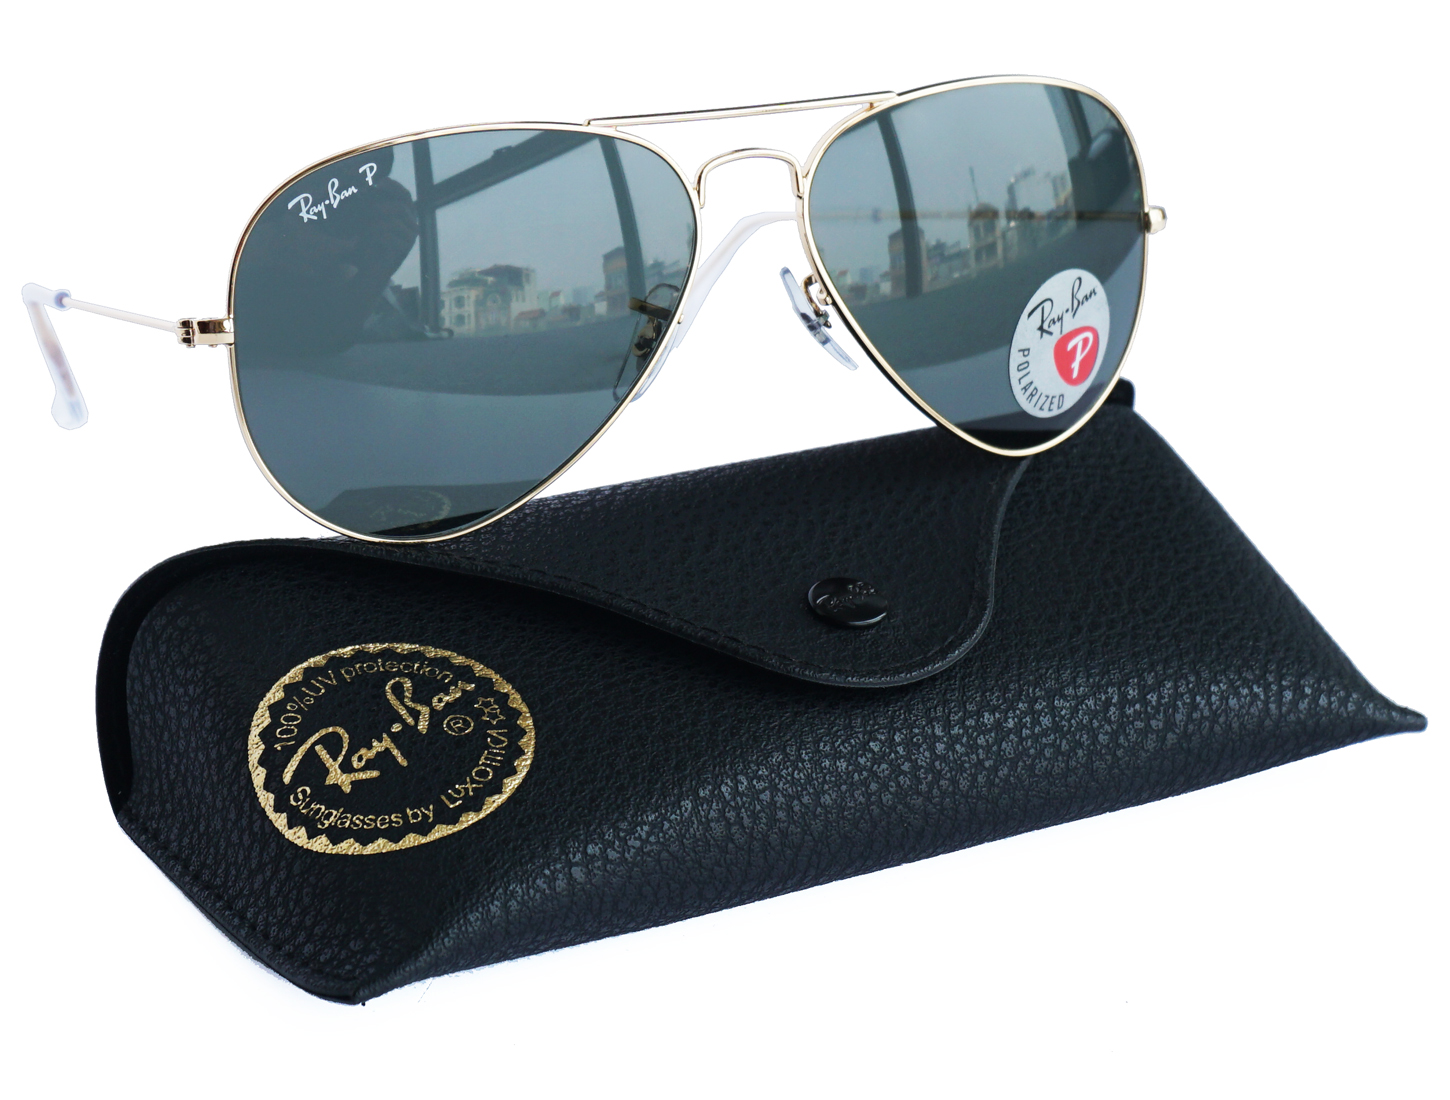 Ray-Ban 3025 Aviator Polarized Gold Green RB 3025 001/58 size 58